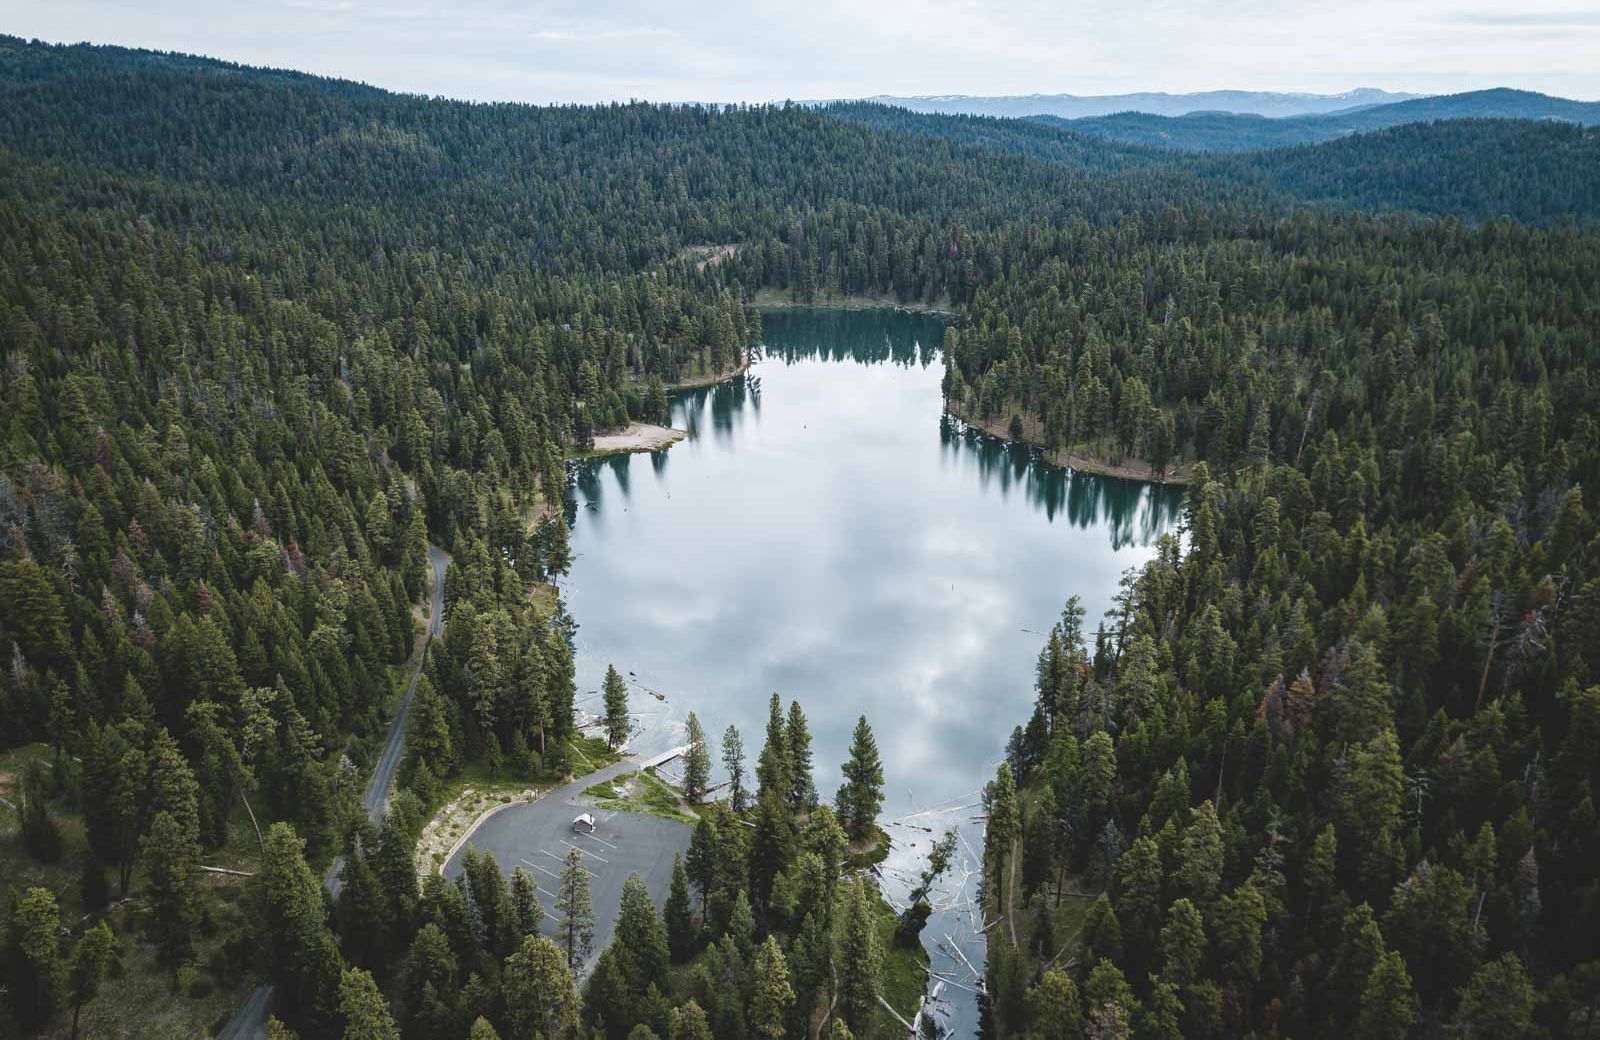 Don't forget to visit Magone Lake when you're at Strawberry Mountain Wilderness.